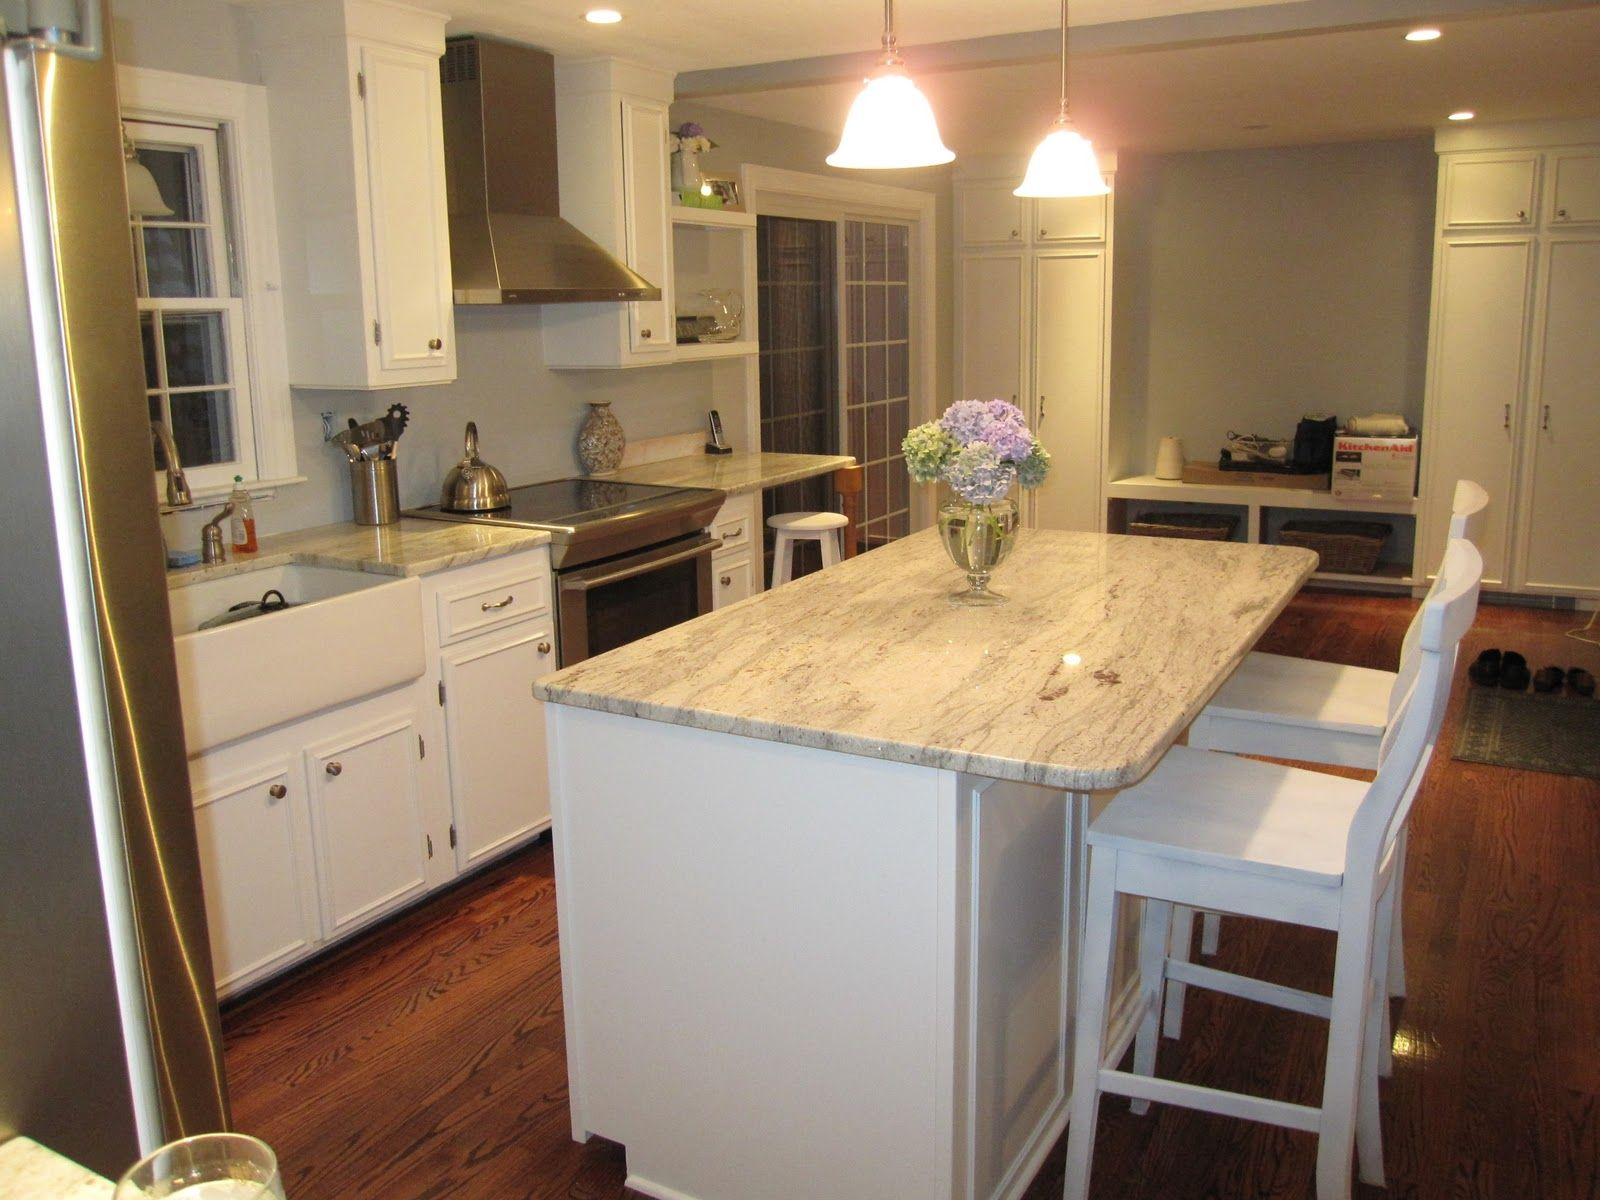 Best White Cabinets With Granite Countertops Diy Kitchen 400 x 300